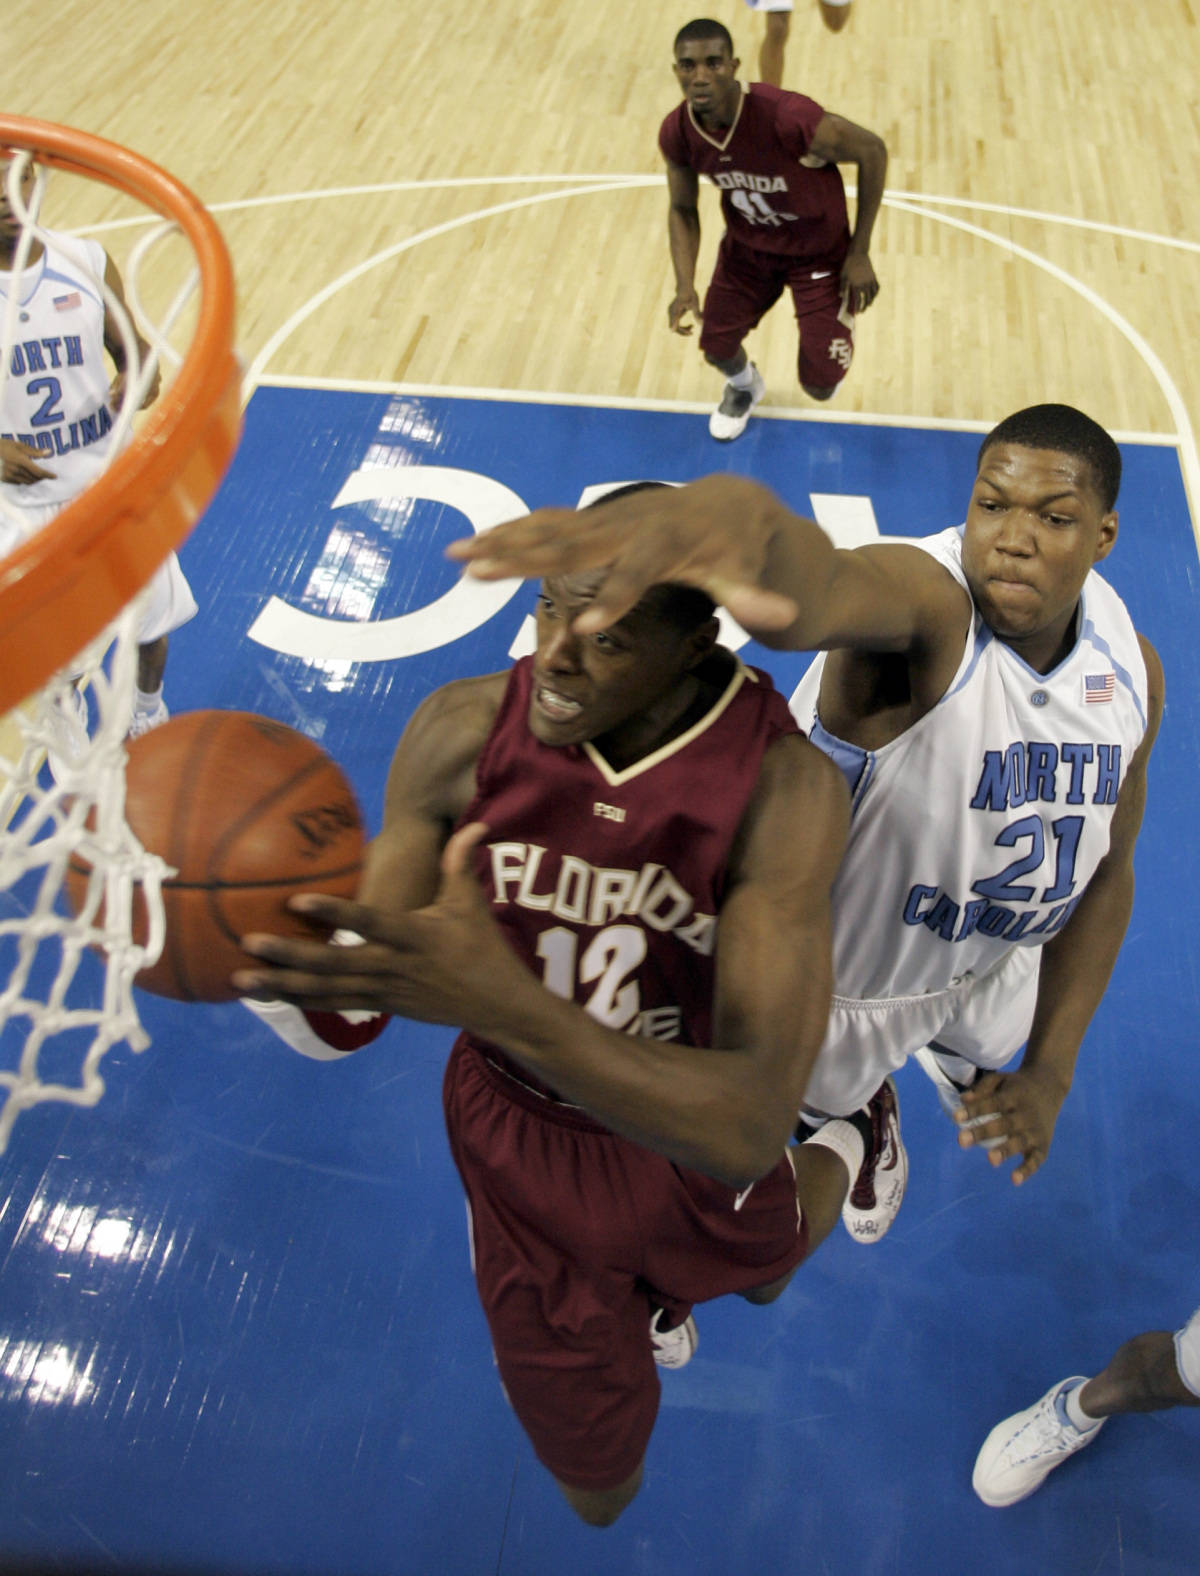 North Carolina's Deon Thompson (21) reaches to block a shot by Florida State's Al Thornton (12) during a second round game of the Men's Atlantic Coast Conference basketball tournament in Tampa, Fla., Friday, March 9, 2007. (AP Photo/David J. Phillip)